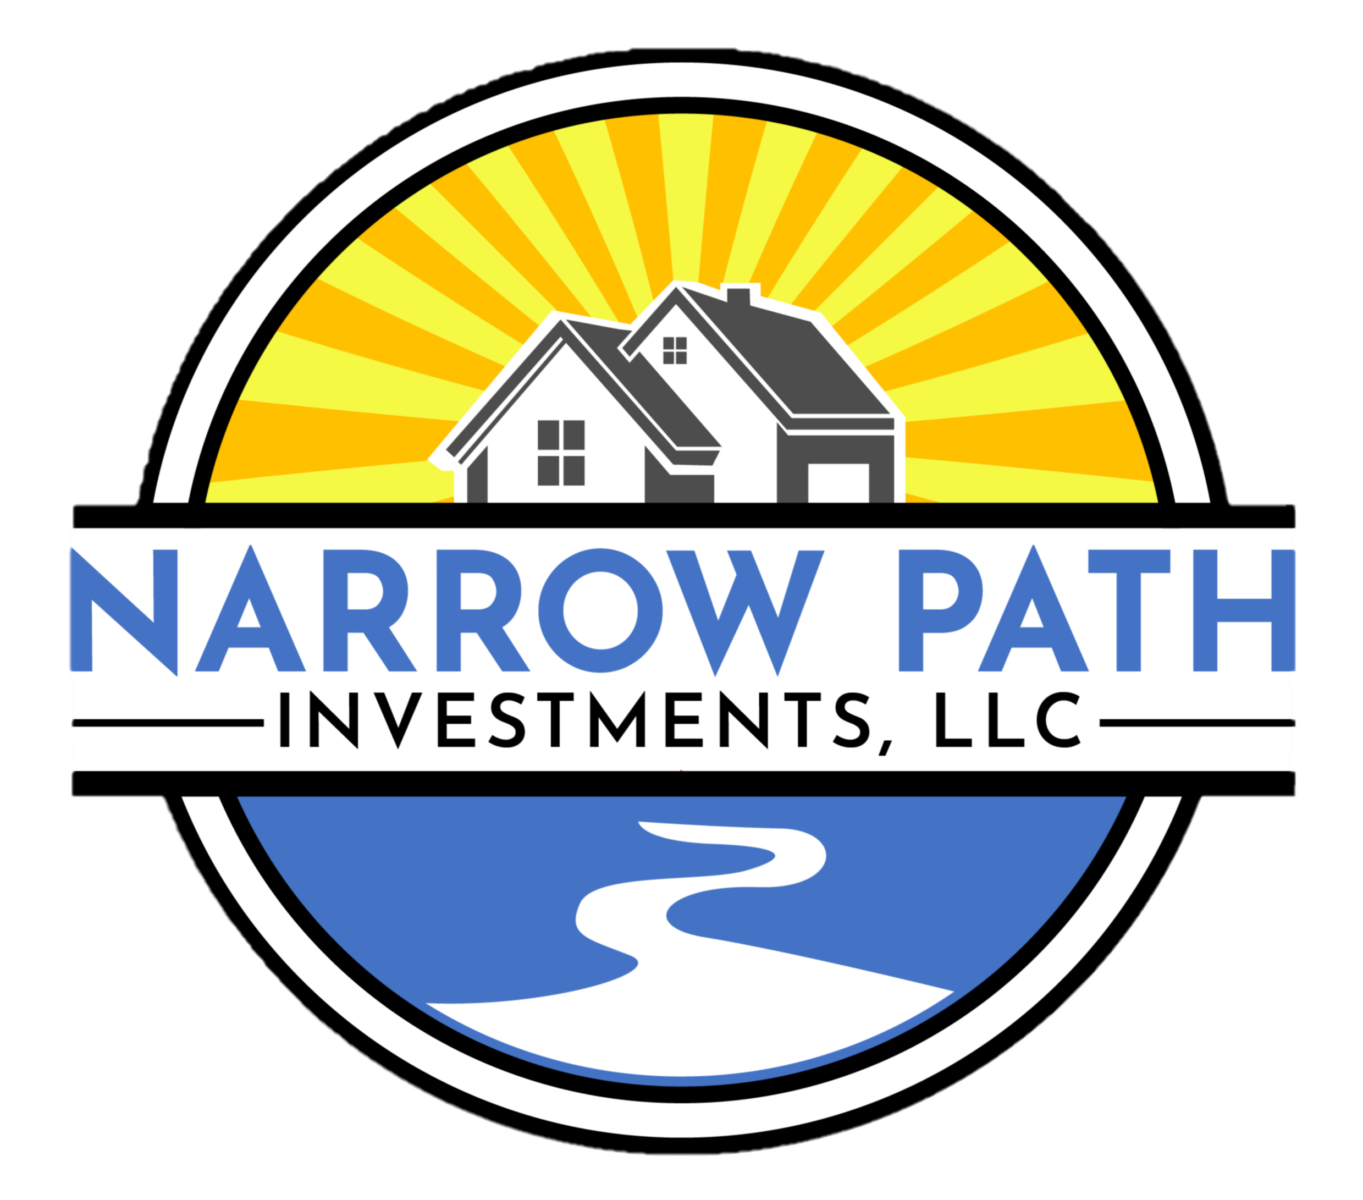 Narrow Path Investments, LLC  logo